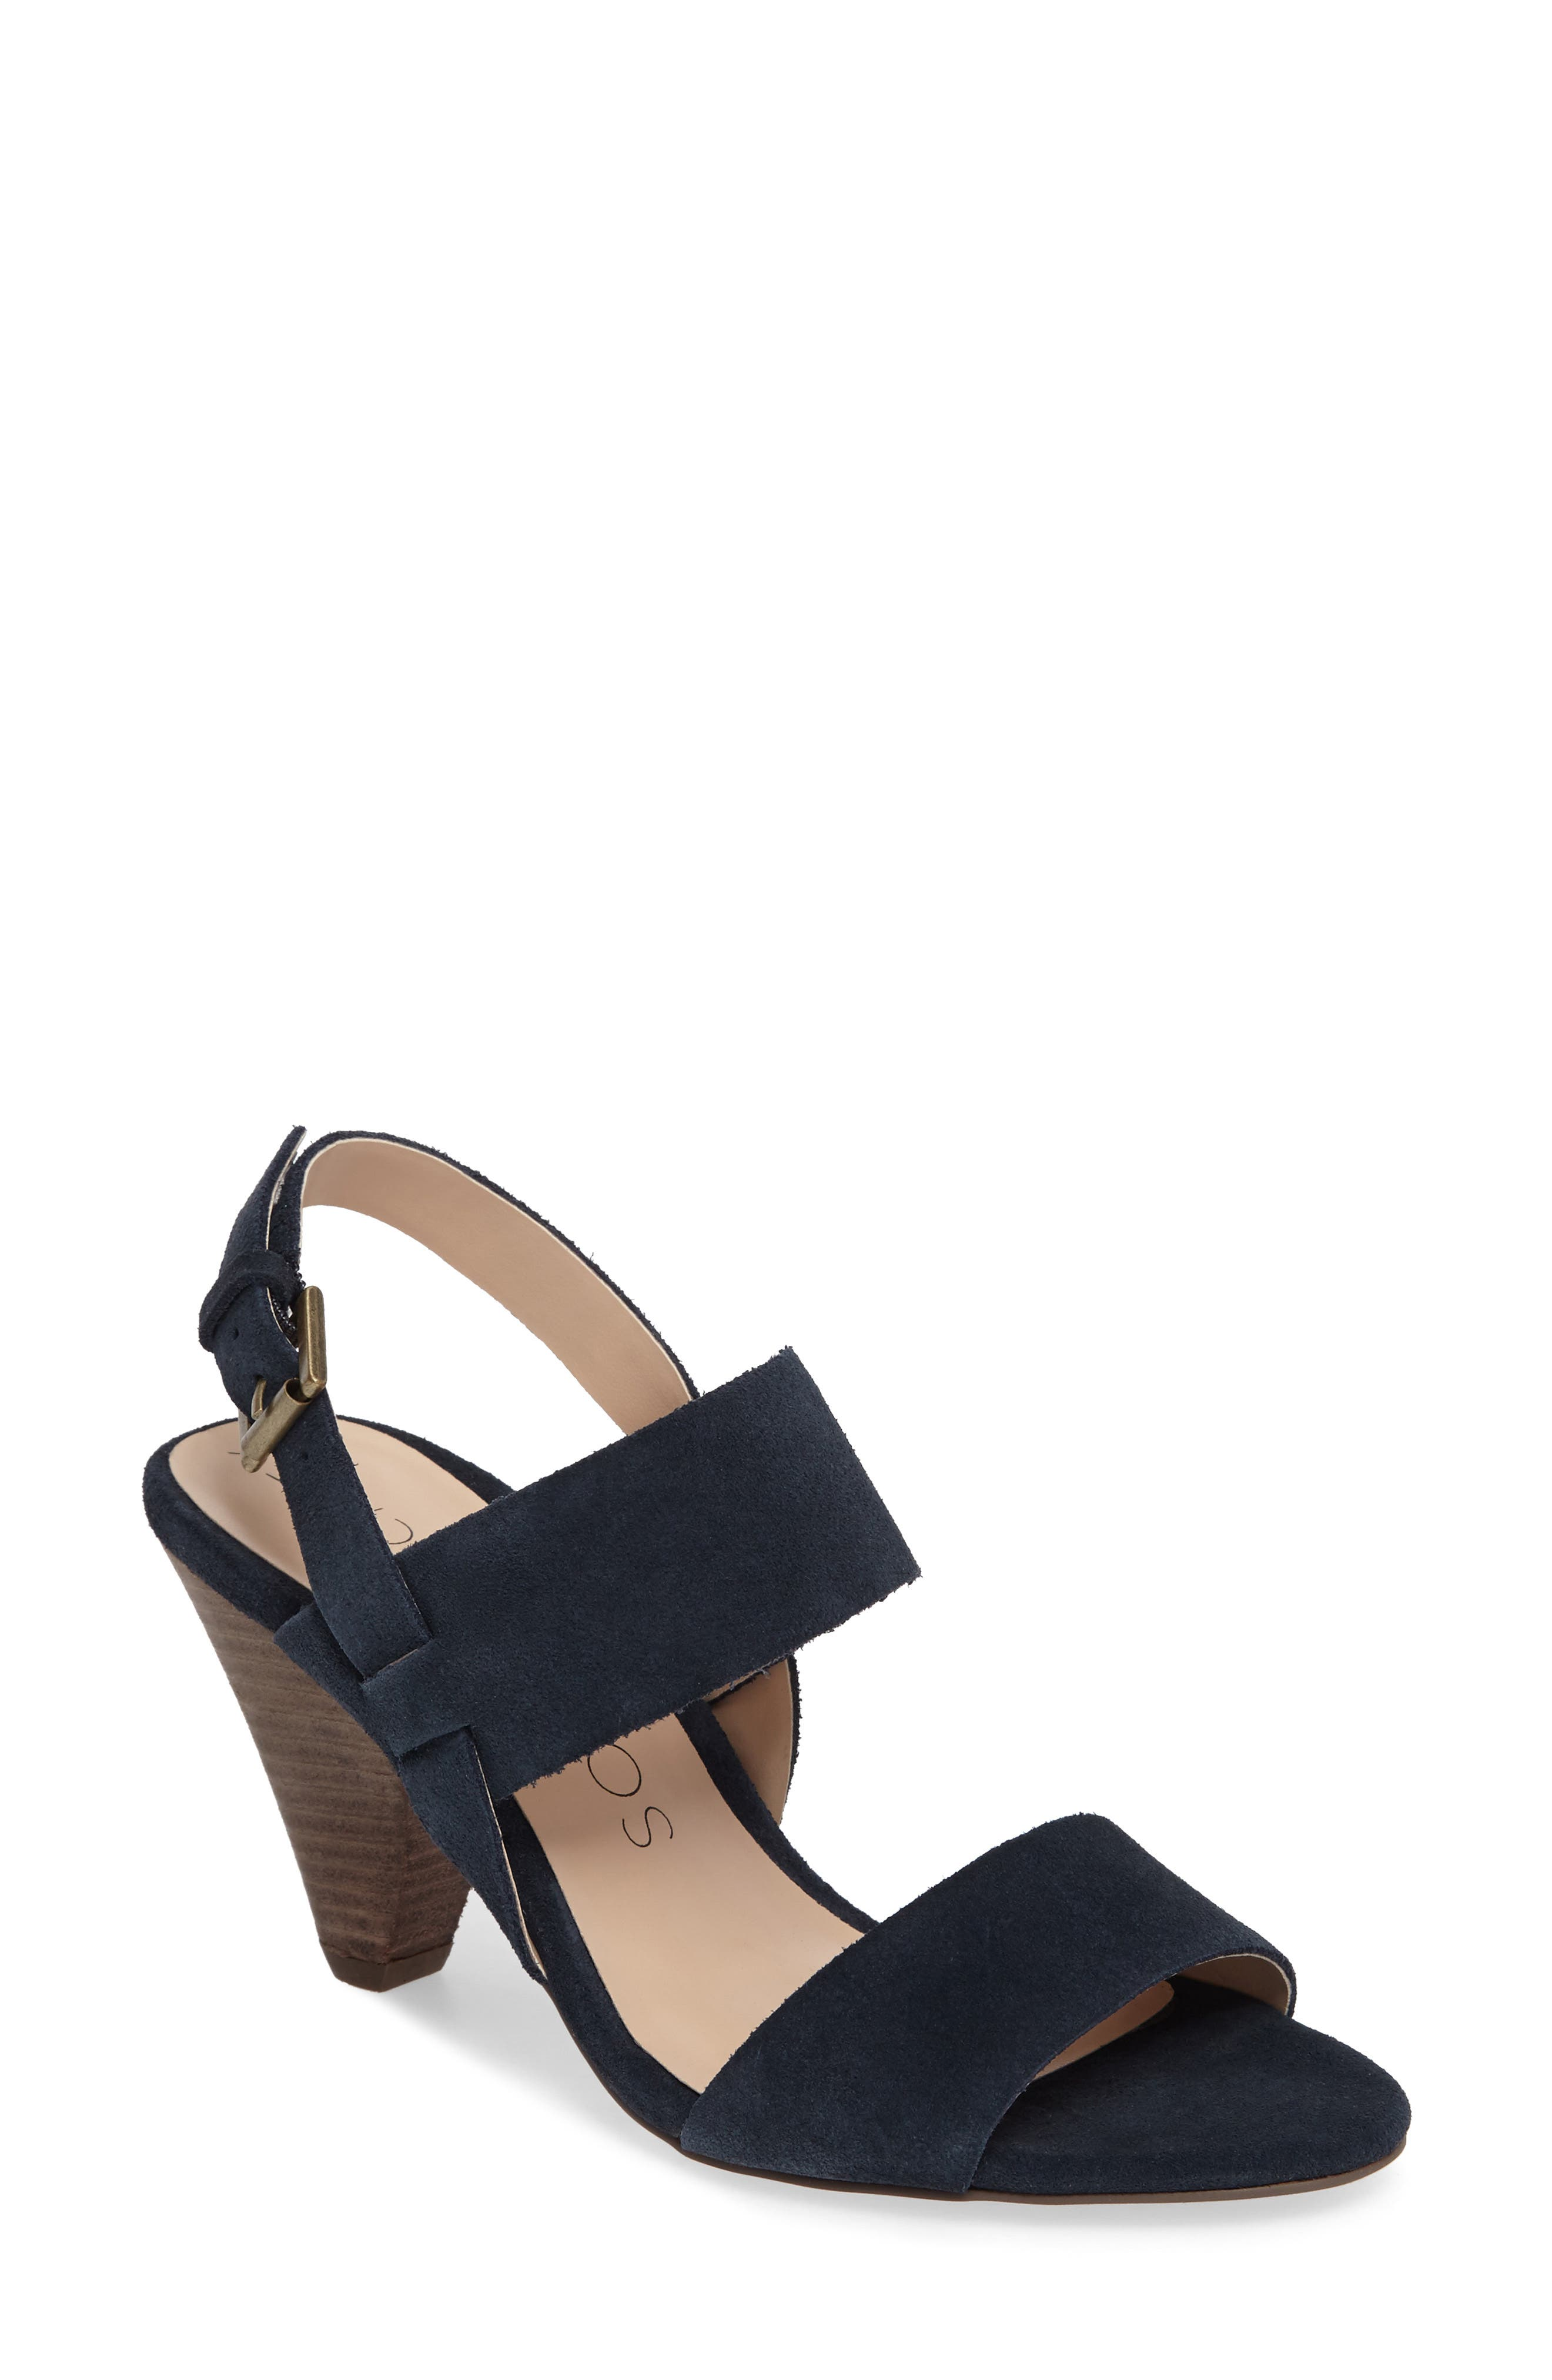 Valor Cone Heel Sandal,                             Main thumbnail 1, color,                             Ink Navy Suede